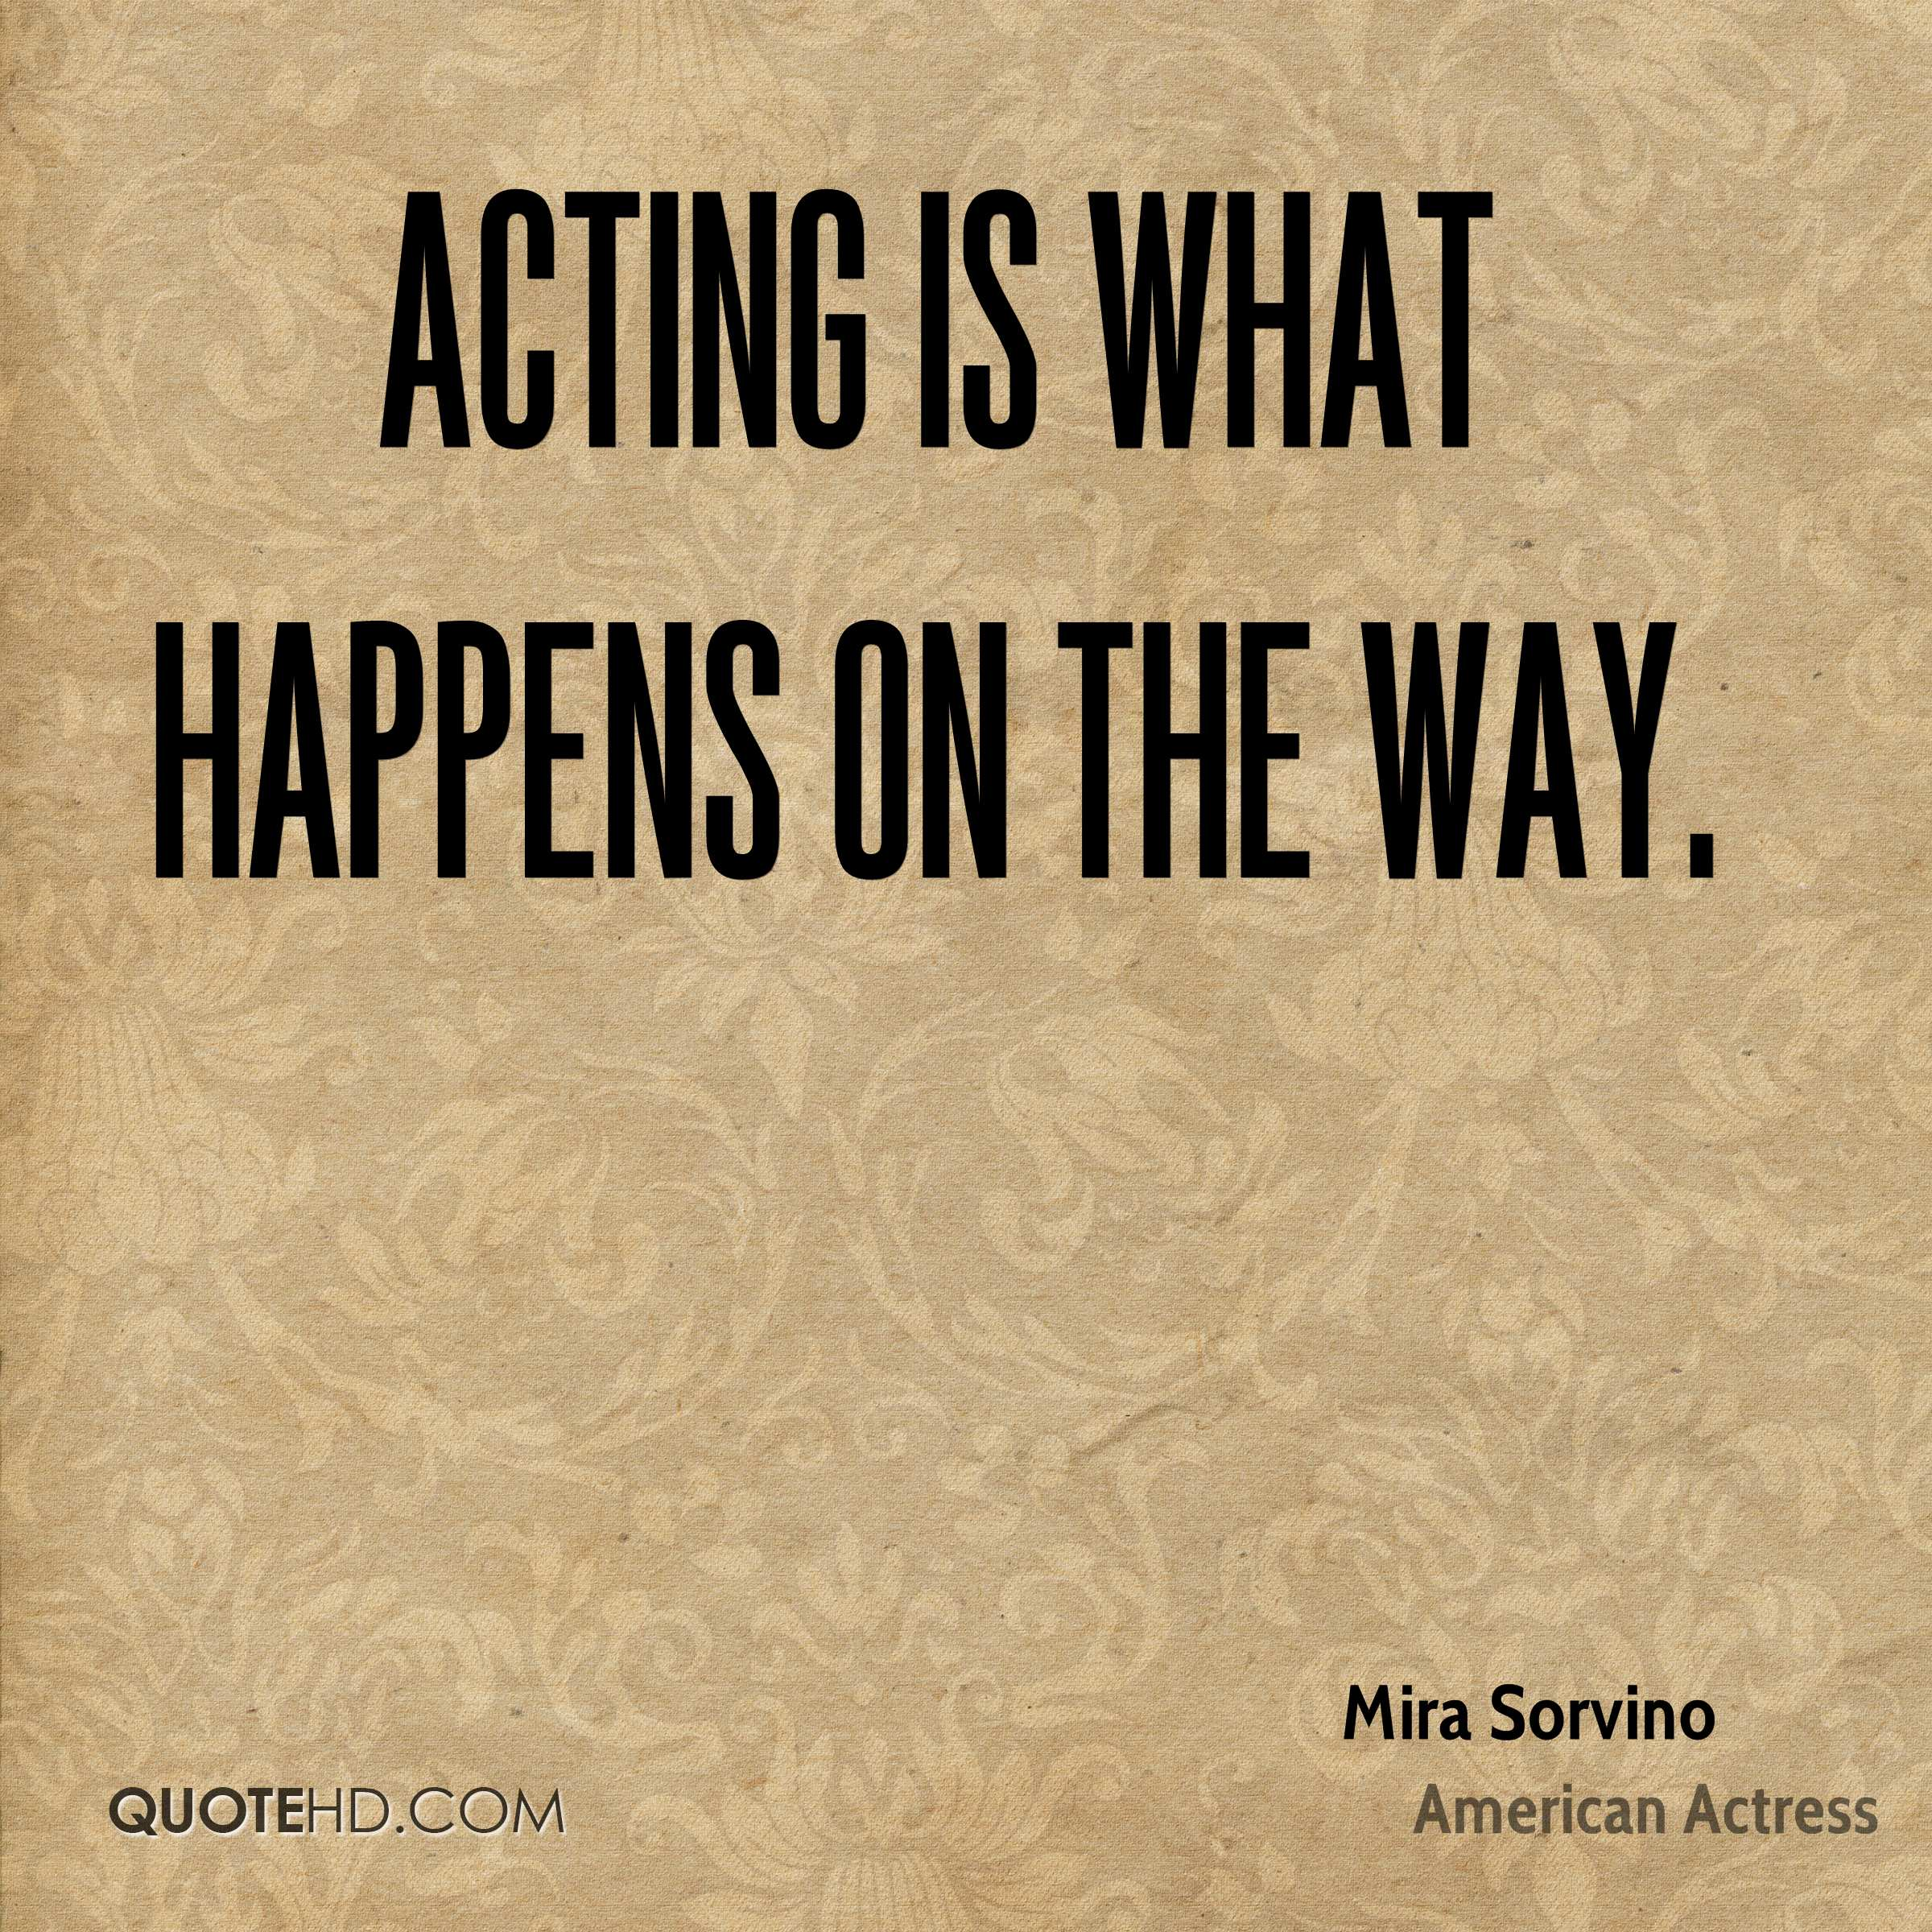 Acting is what happens on the way.